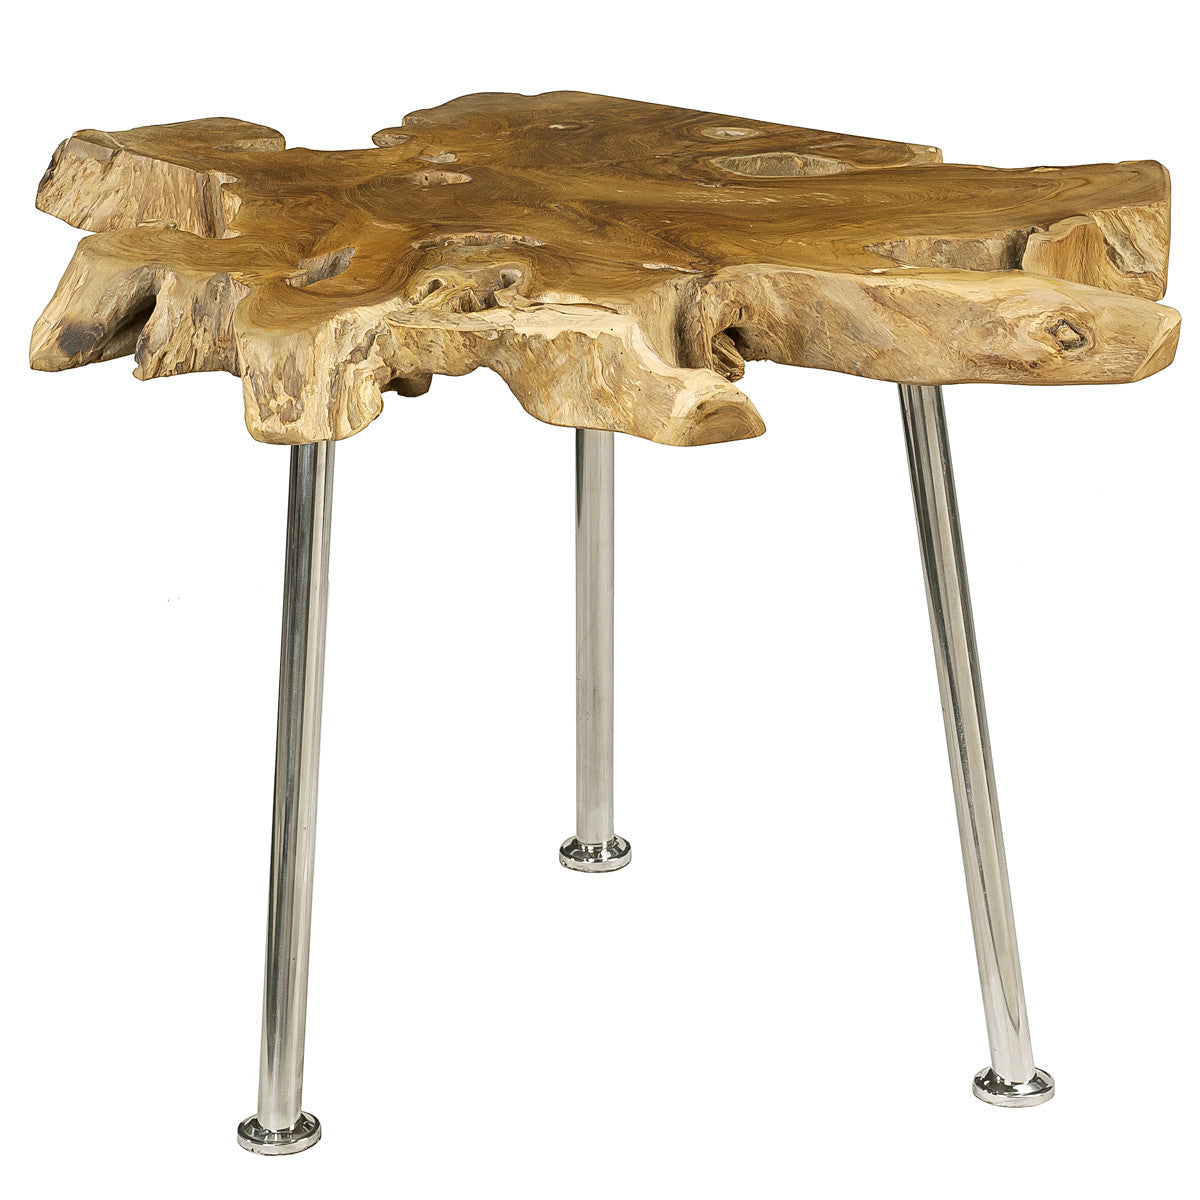 Gable Teak Root Table with Stainless Steel Legs – Wrightwood Furniture